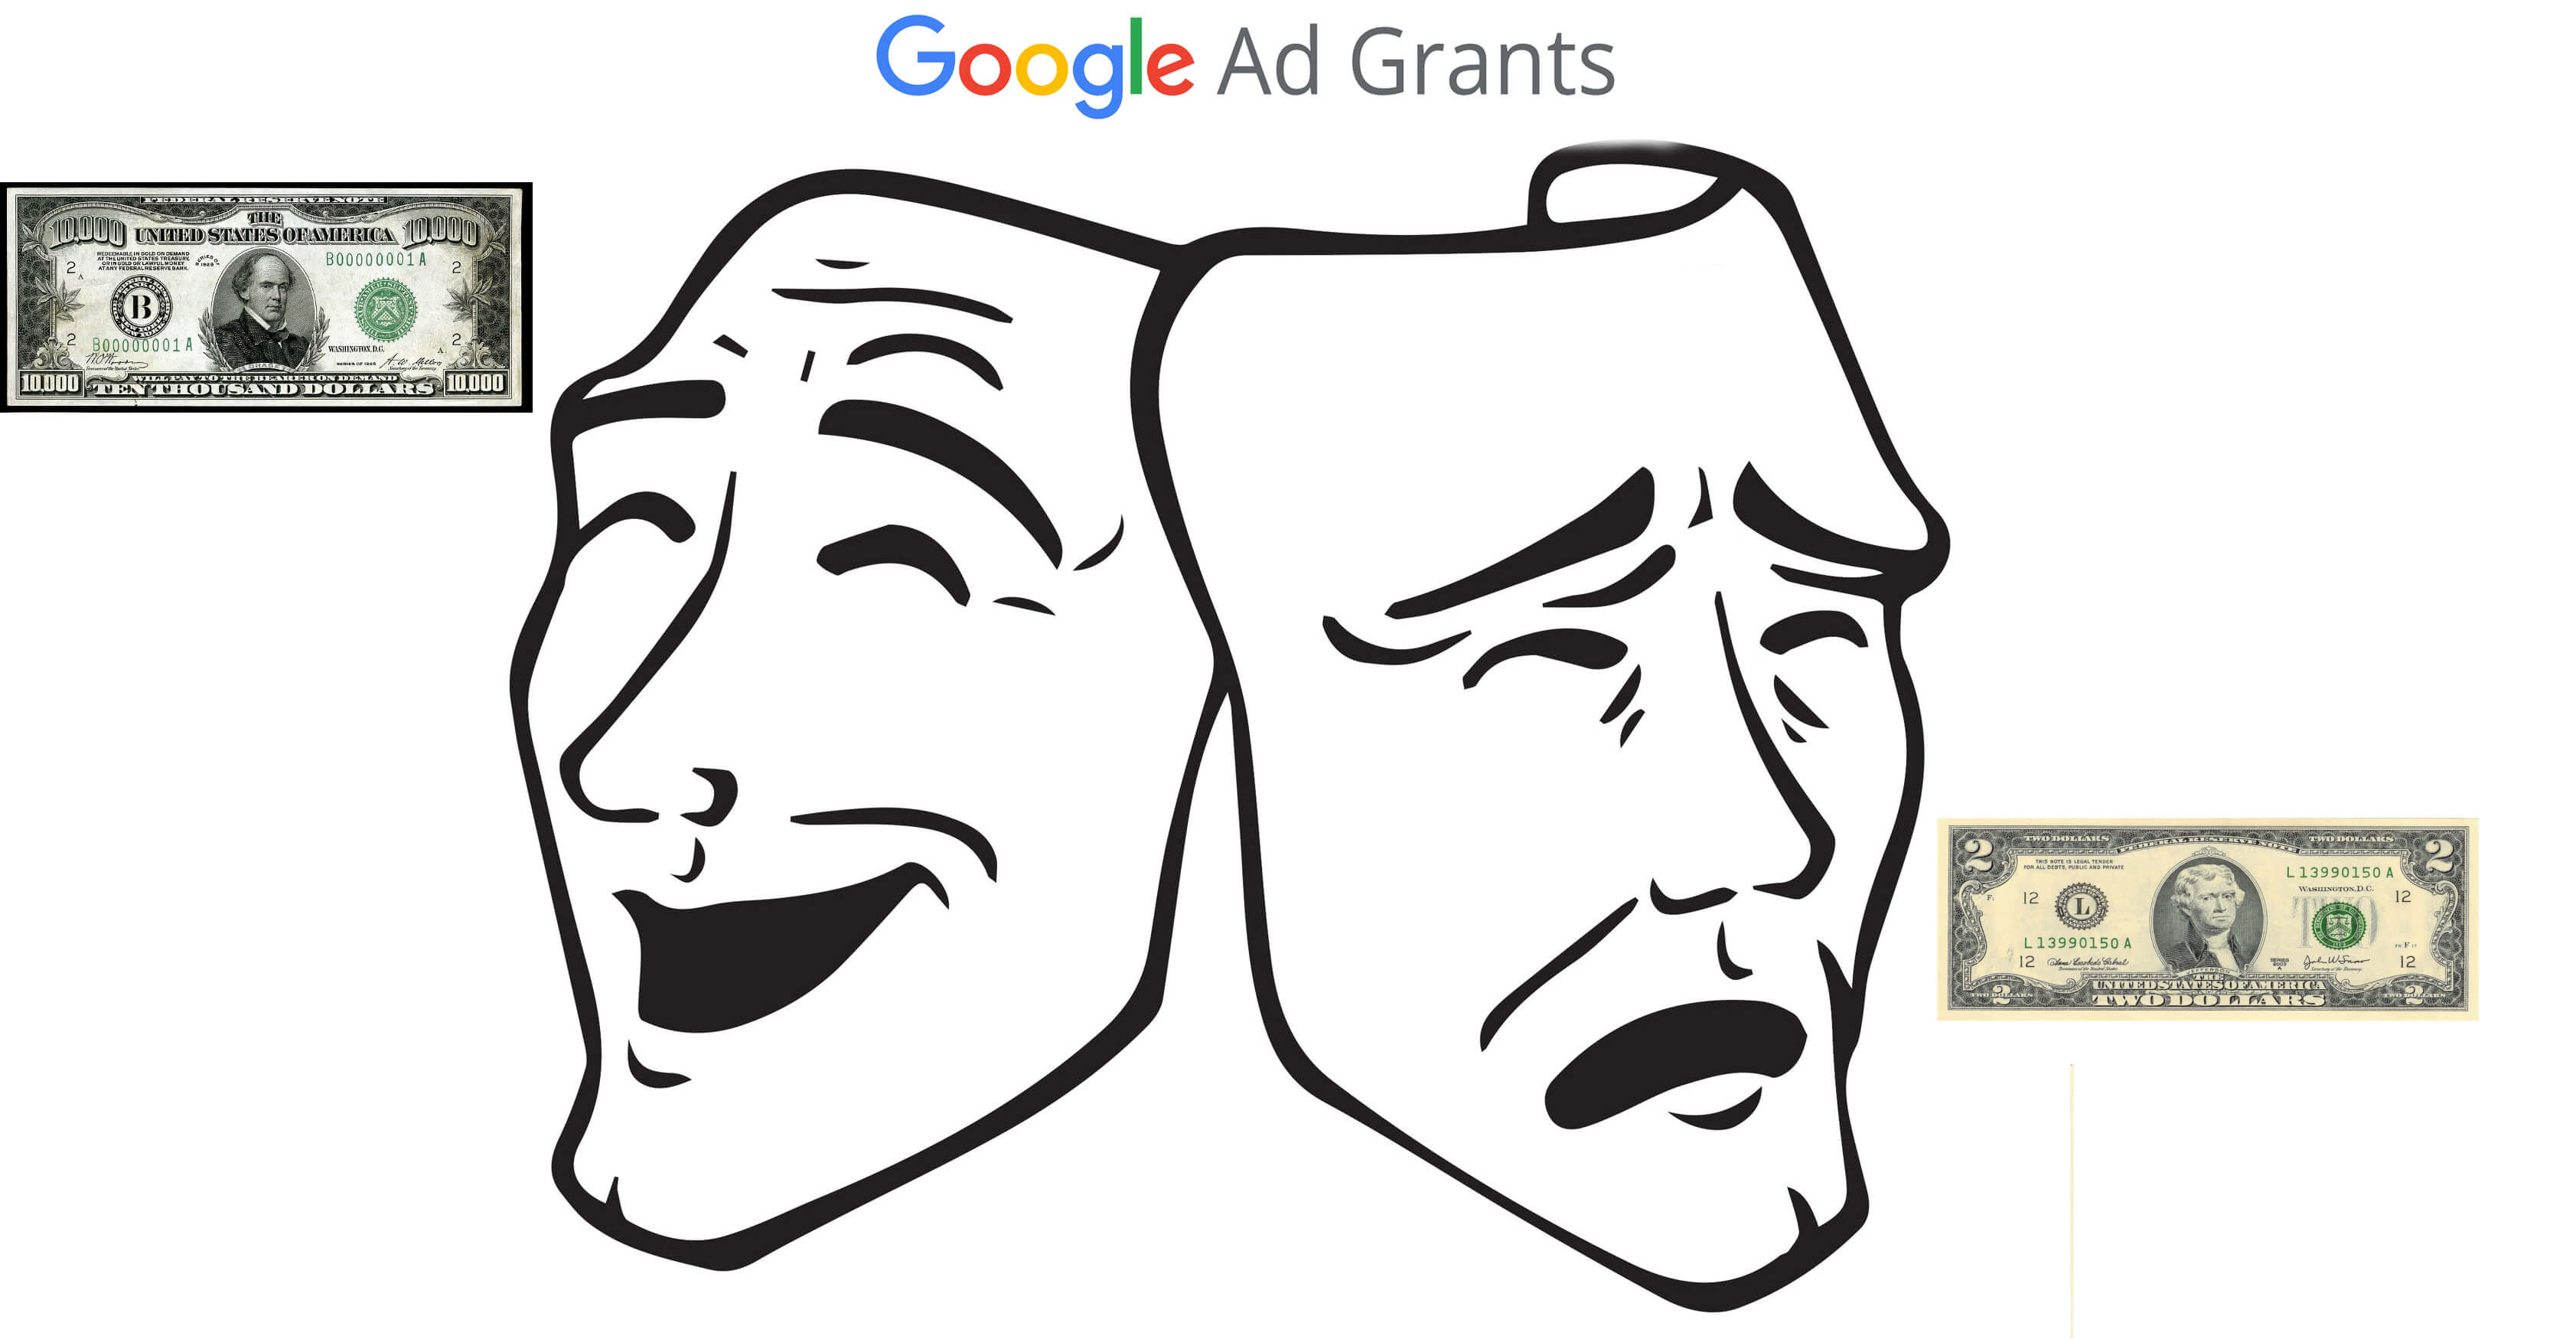 Au Revoir Concordancias de Adwords | Estrategias Google Grants